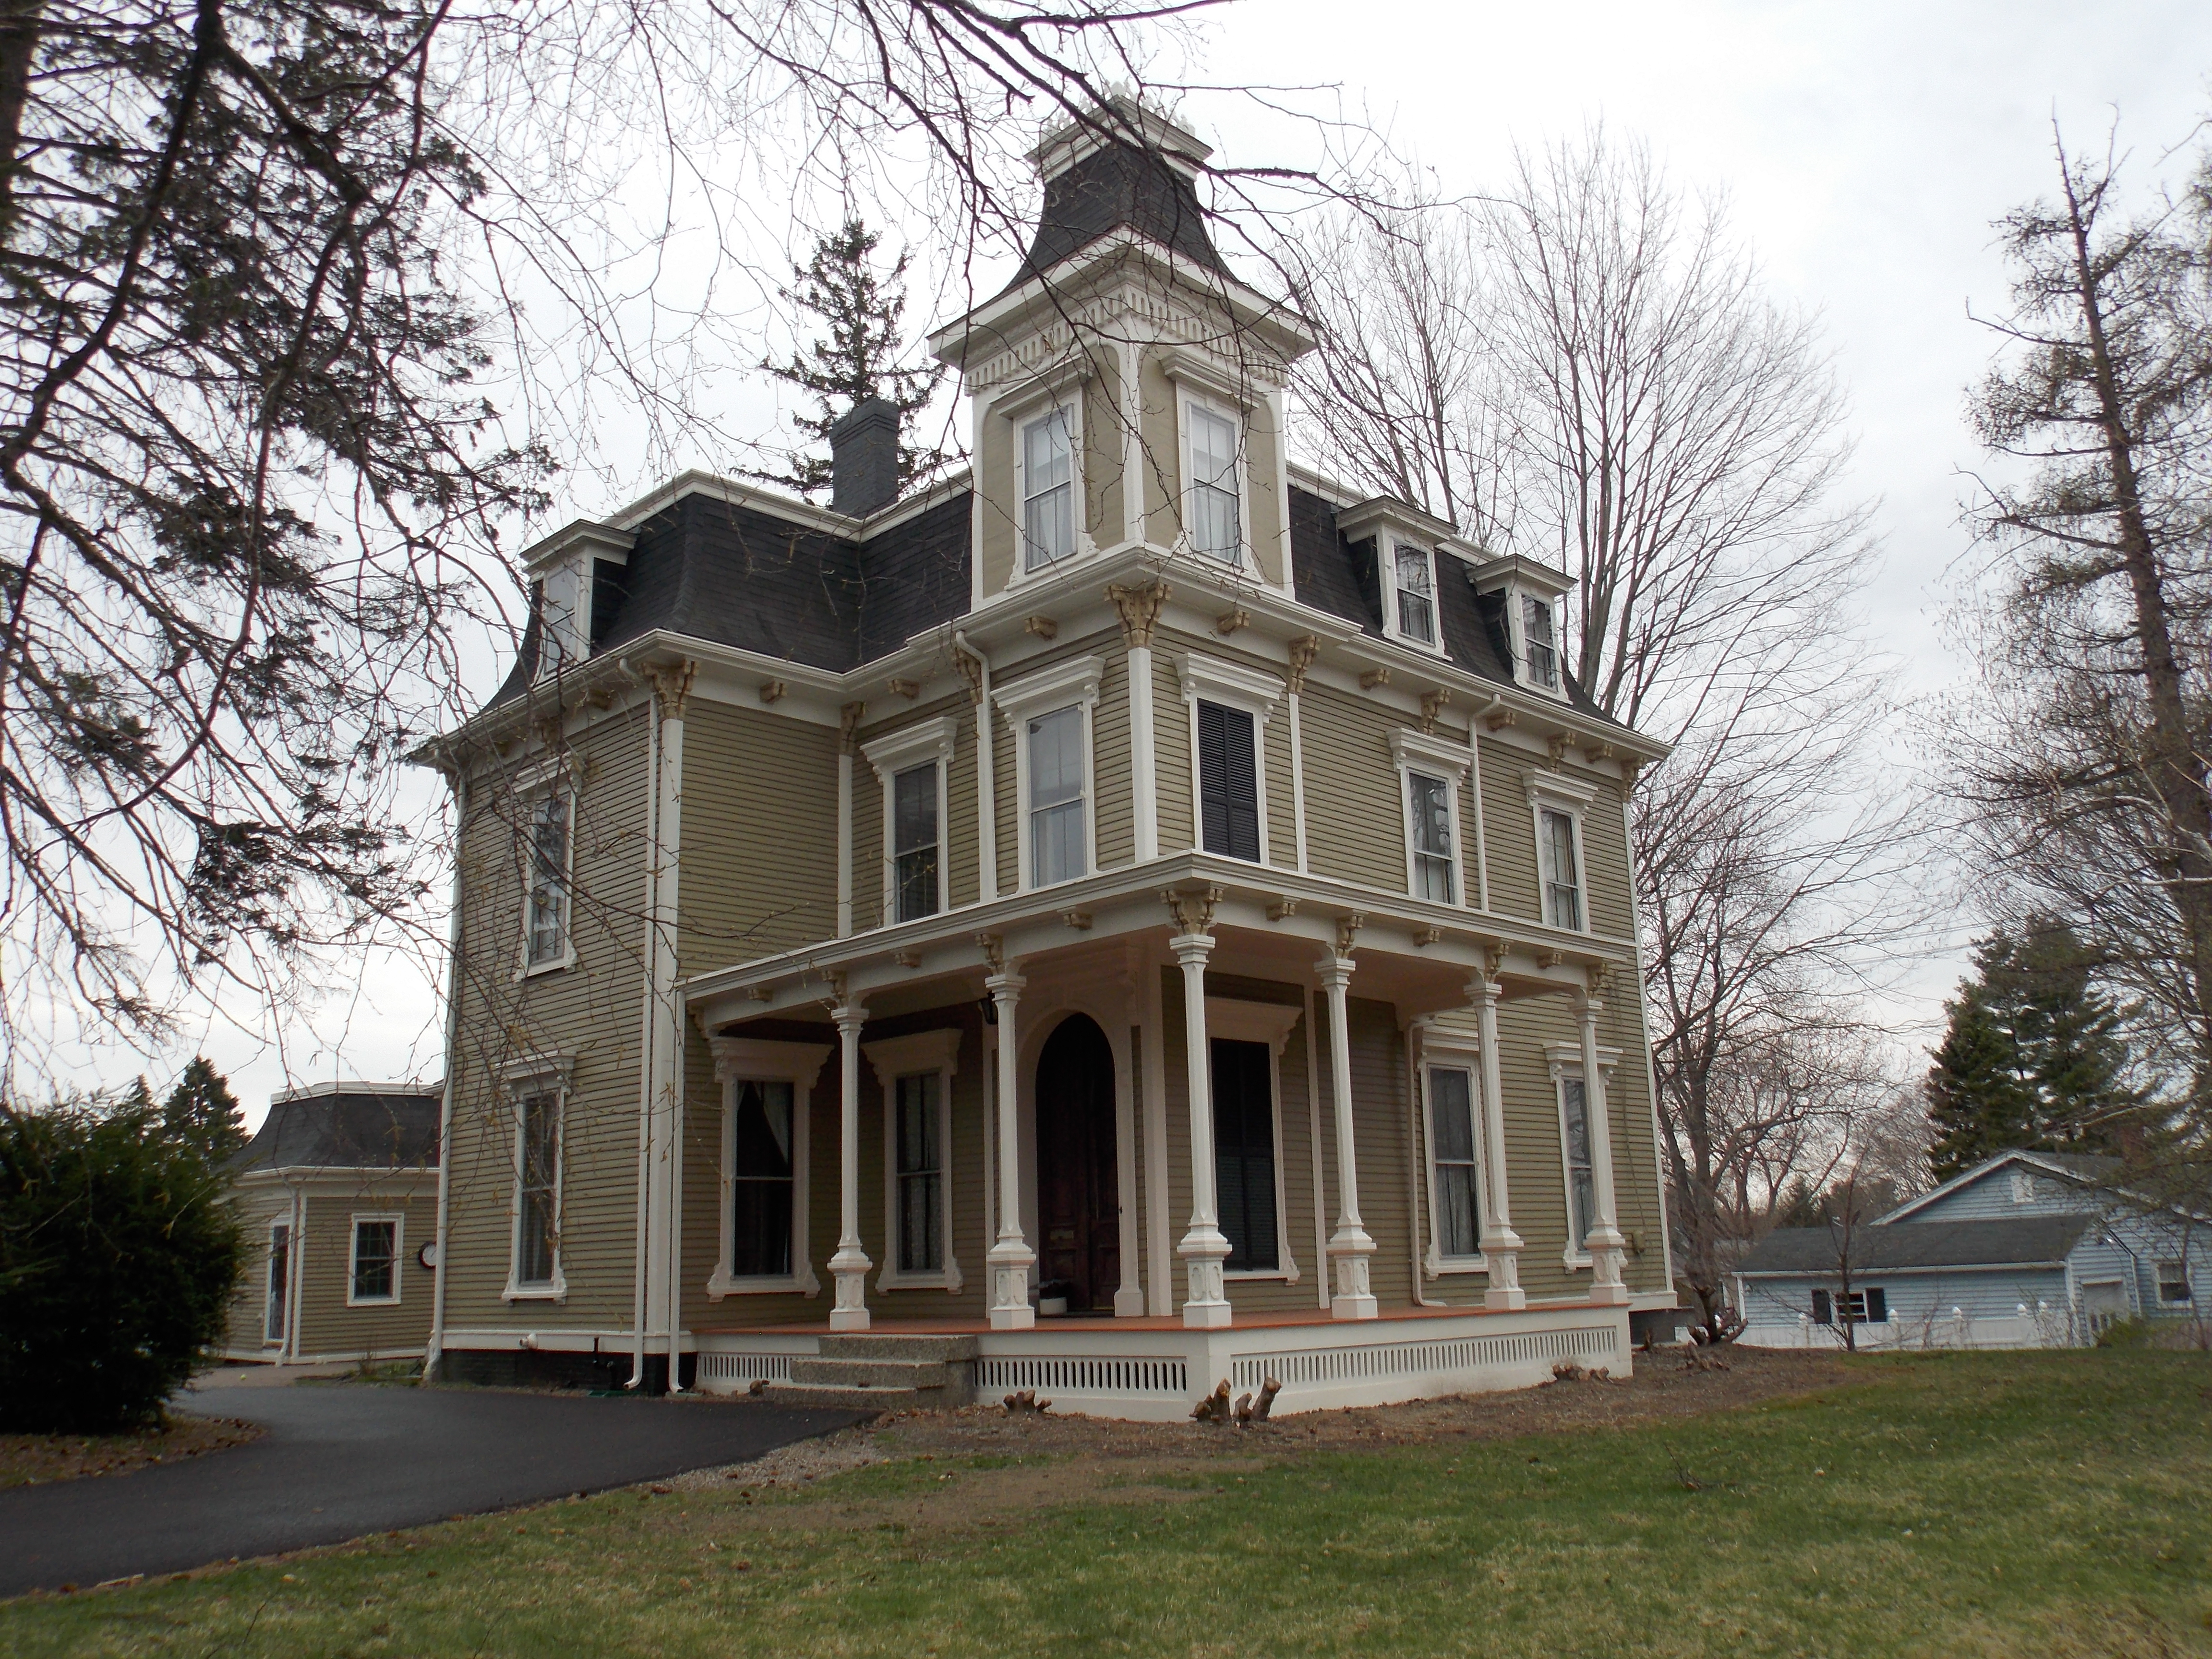 A photo of the Leonard Bond Chapman House in 2016, by Farragutful of Wikimedia Commons